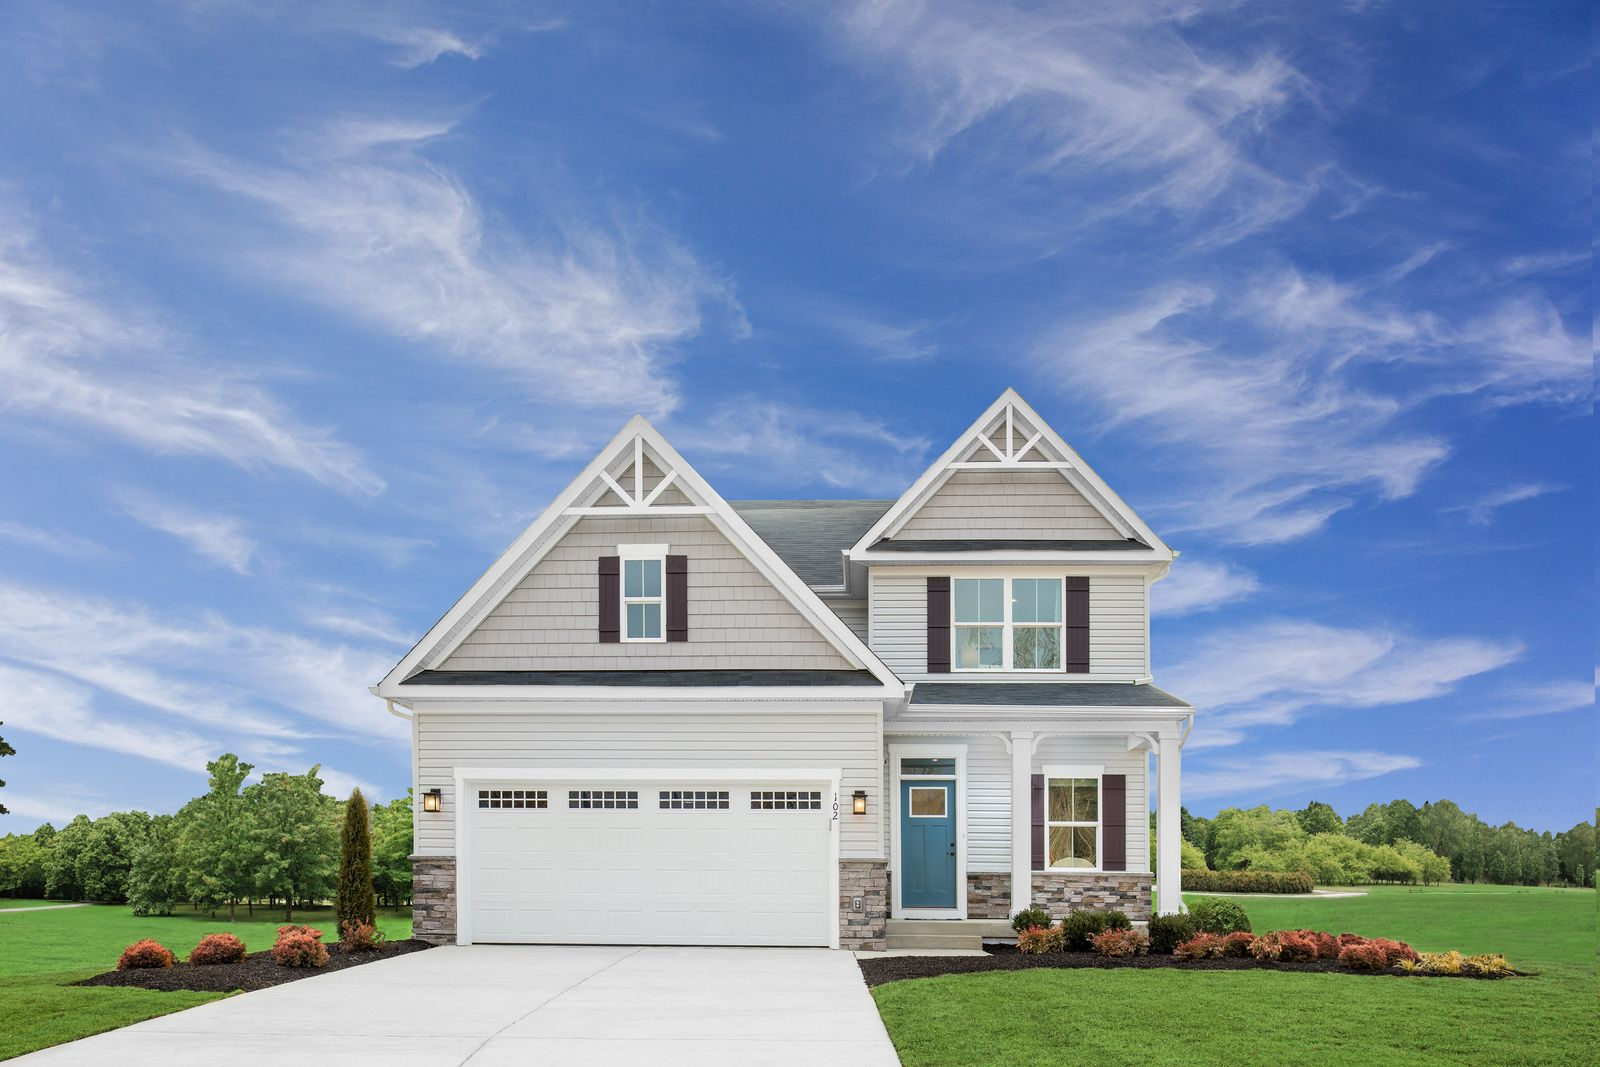 WELCOME HOME TO WICKER CREEK:Best Priced New Homes in Plain Township! Spacious homesites nestled in a charming community. Less than 3 miles from Oakwood & Washington Square! From upper $200s.